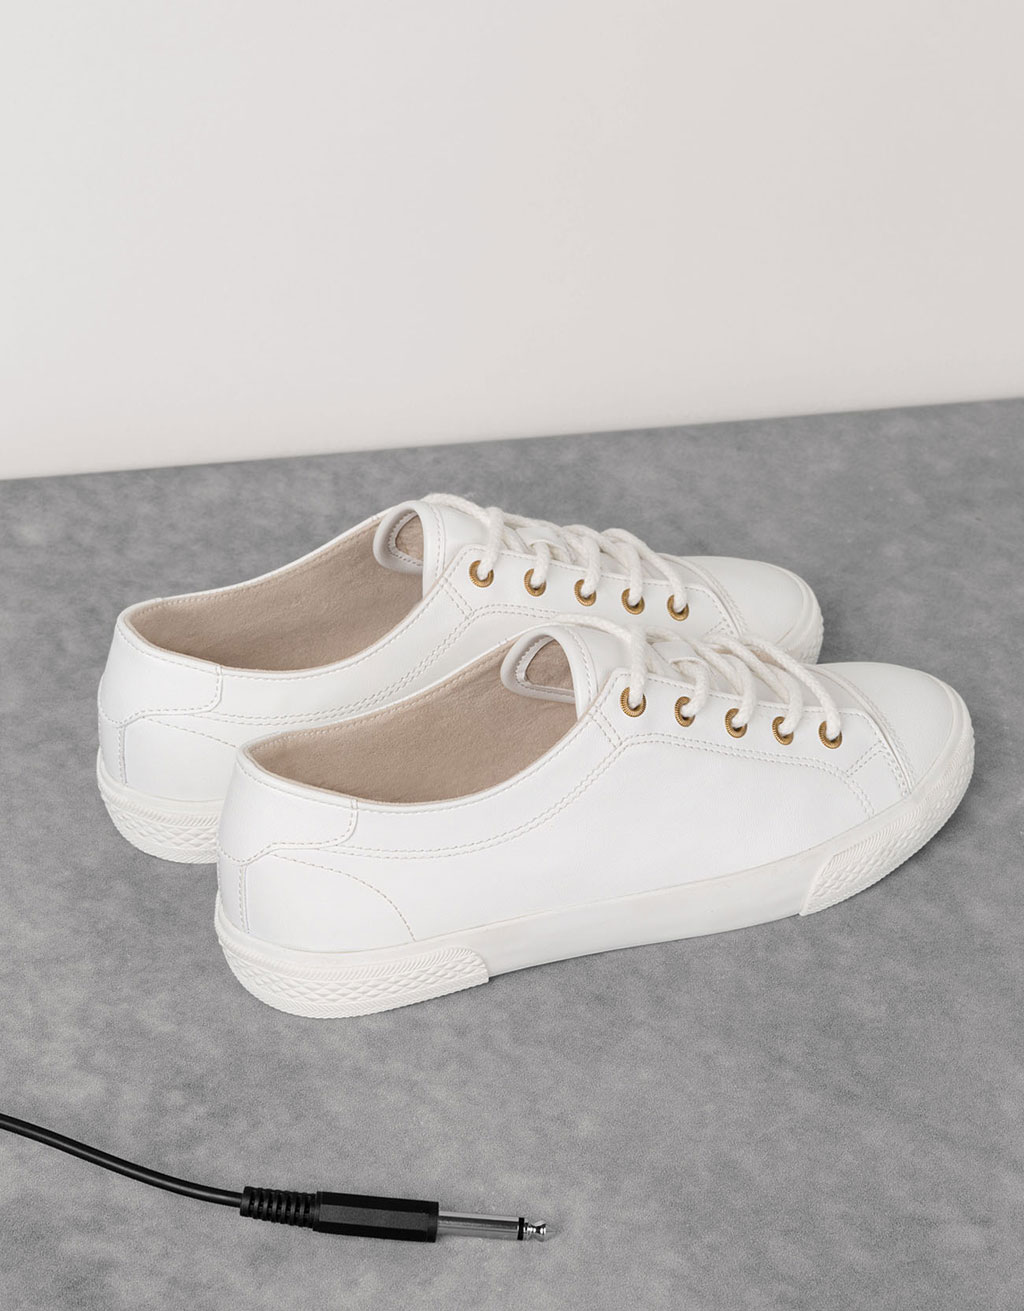 Basic toe cap sneakers